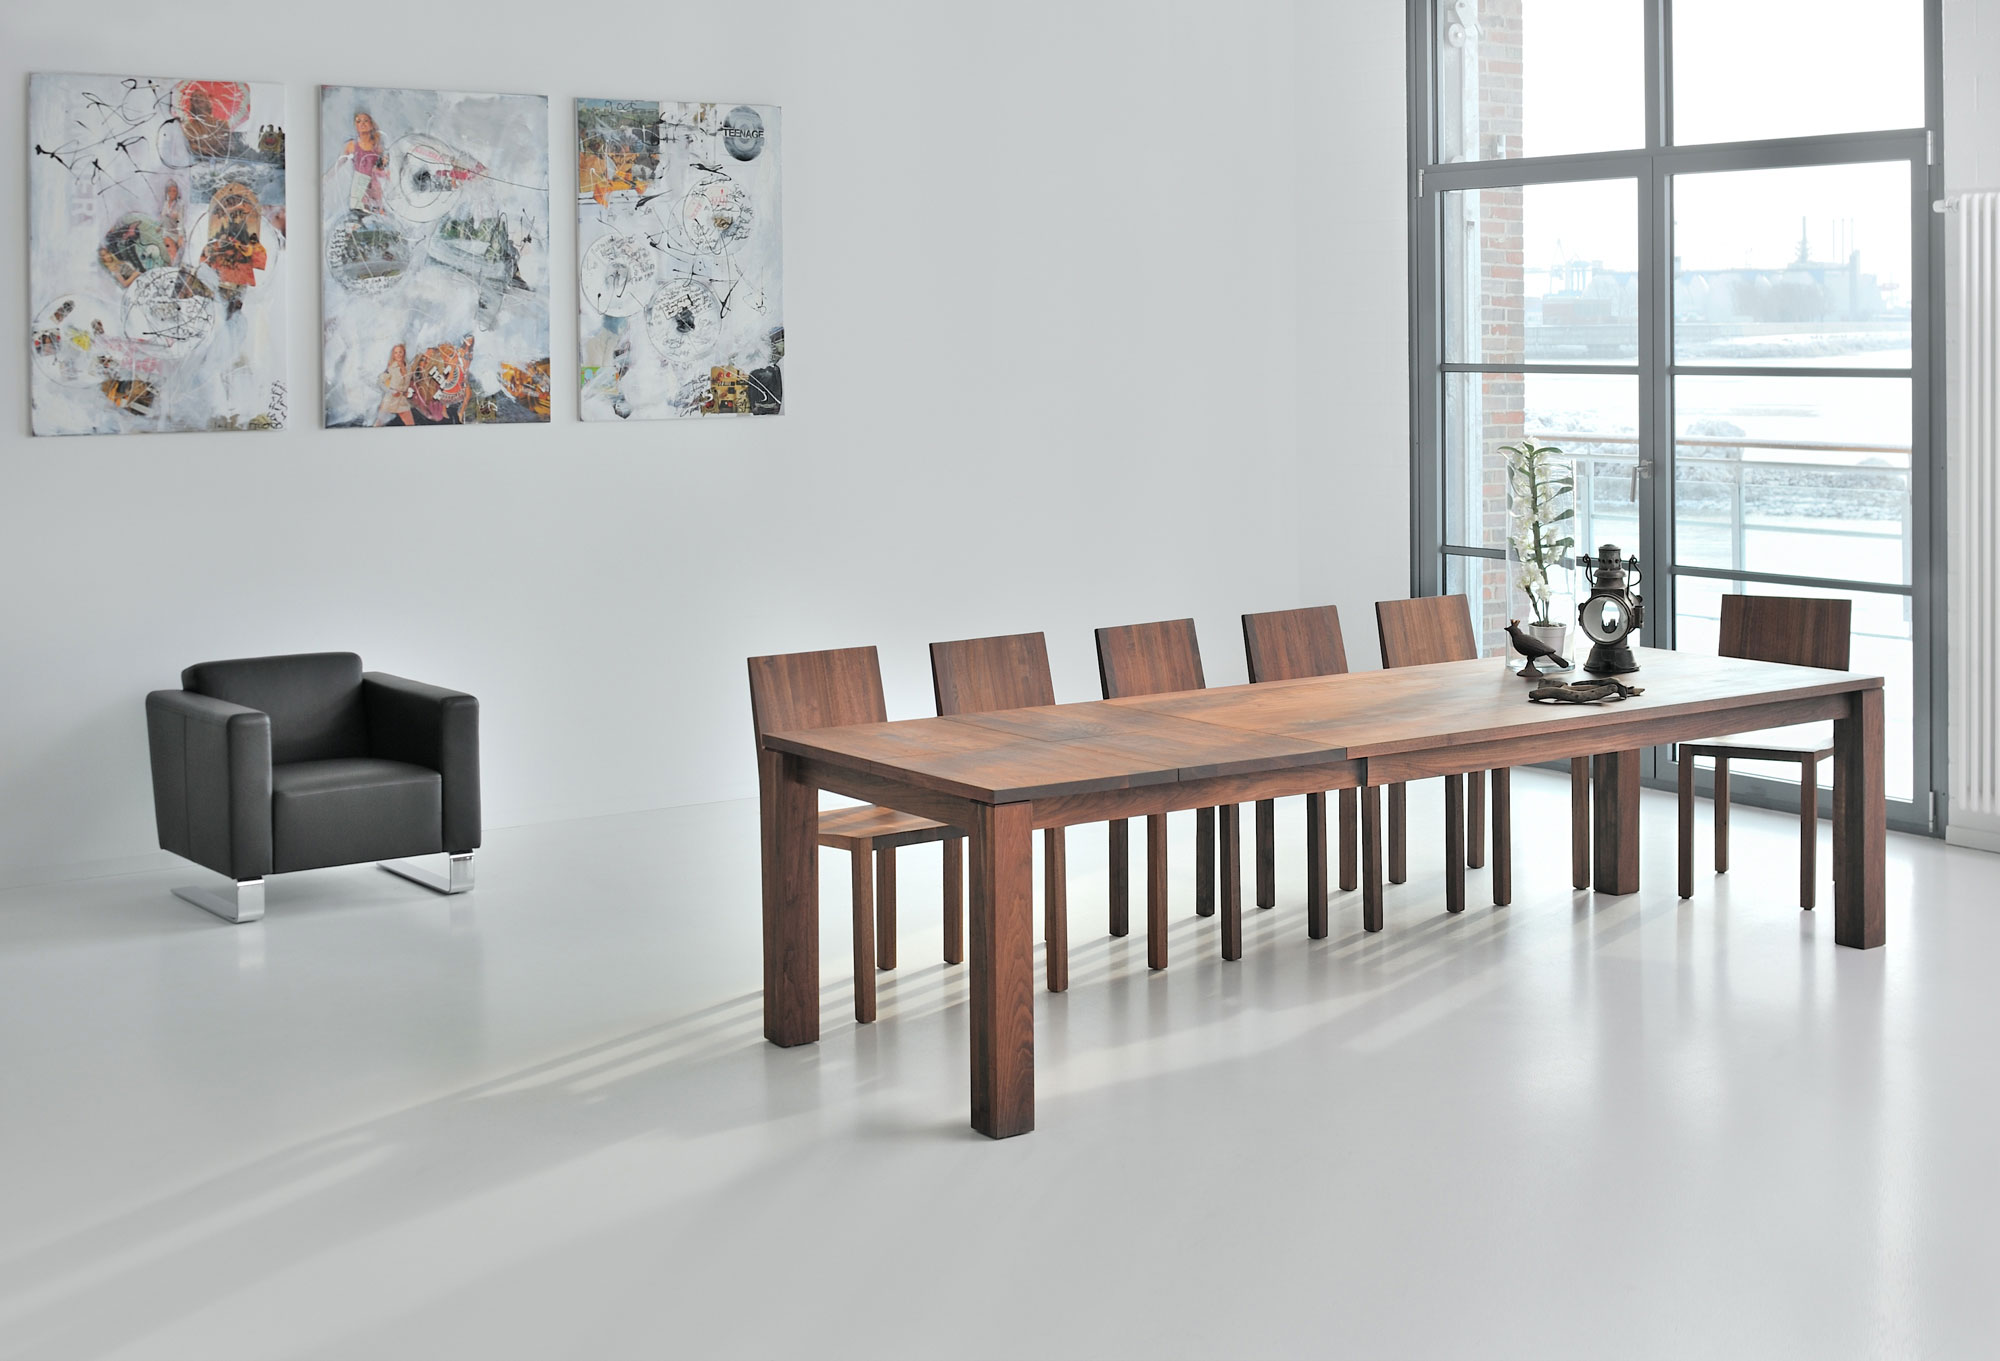 Pull-out Solid Wood Table LIVING BUTTERFLY 2476aPostk2 custom made in solid wood by vitamin design